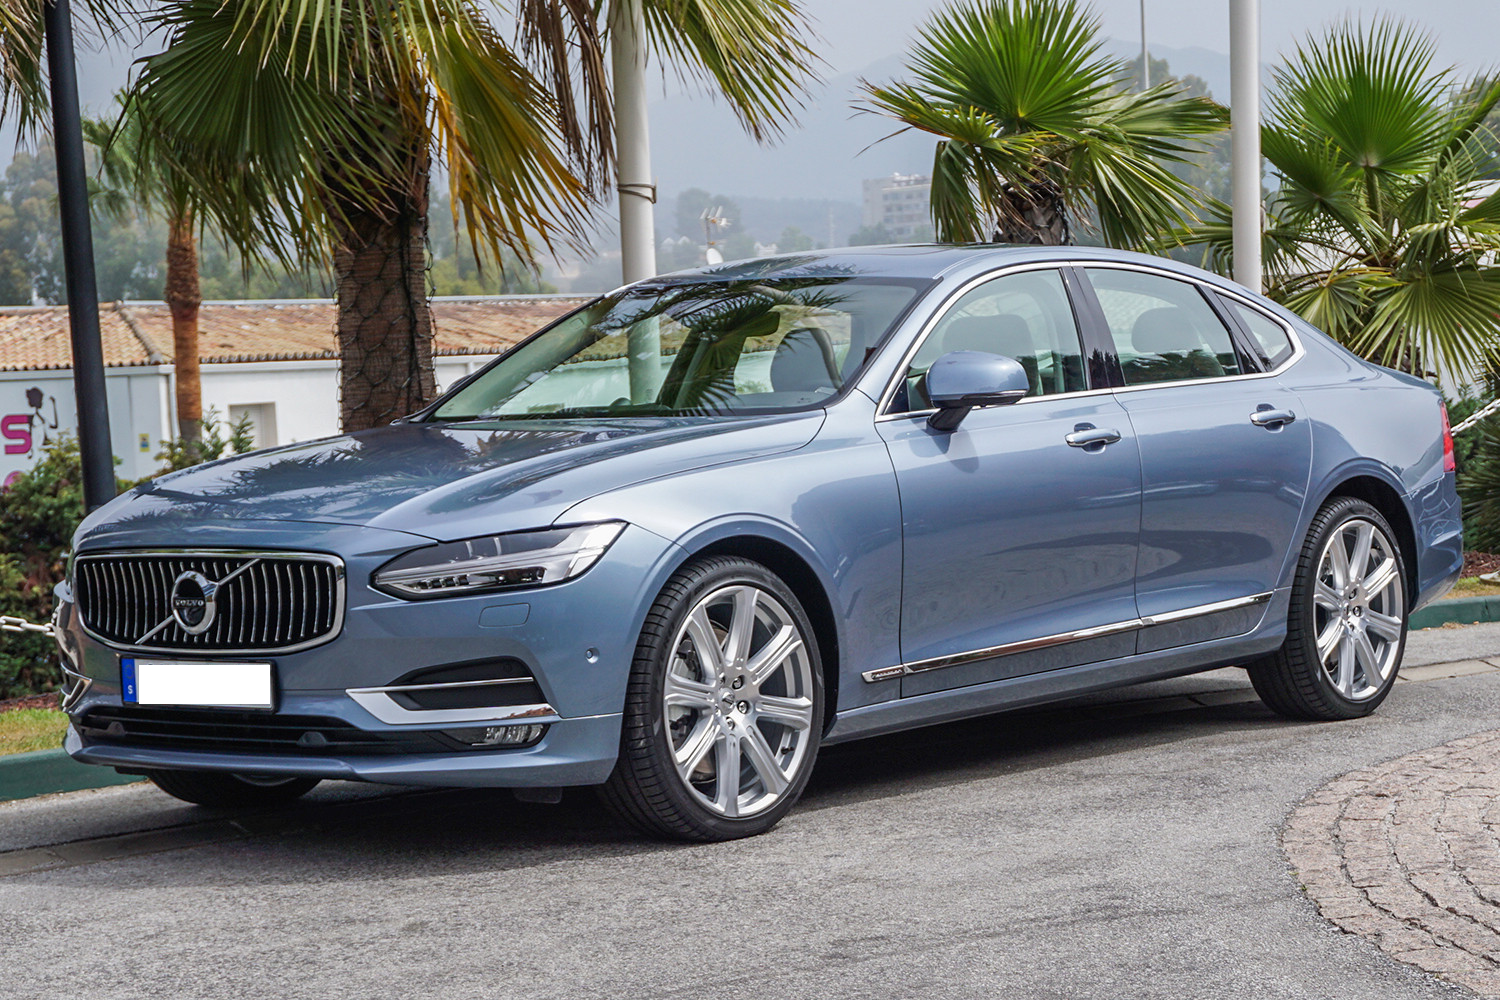 2017 volvo s90 review living the nearly self driving life gearopen. Black Bedroom Furniture Sets. Home Design Ideas